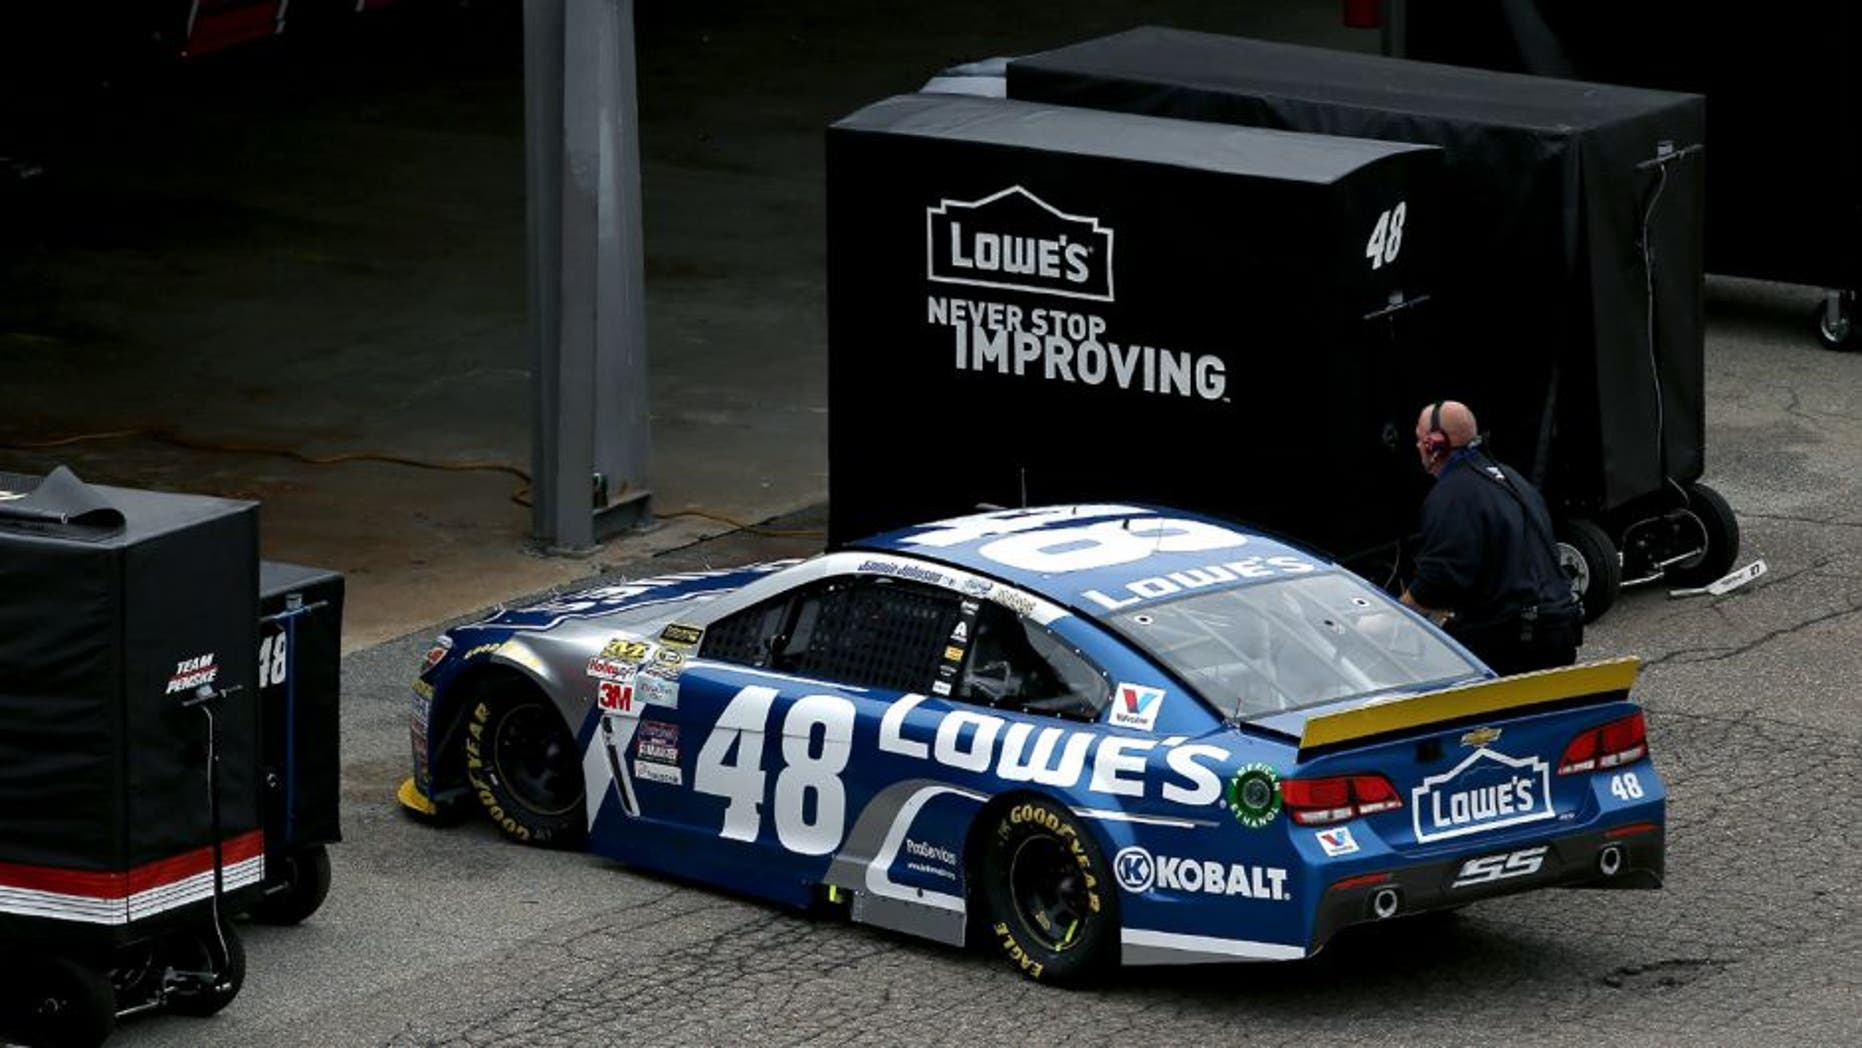 DOVER, DE - OCTOBER 04: Jimmie Johnson, driver of the #48 Lowe's Chevrolet, drives into his garage during the NASCAR Sprint Cup Series AAA 400 at Dover International Speedway on October 4, 2015 in Dover, Delaware. (Photo by Patrick Smith/Getty Images)